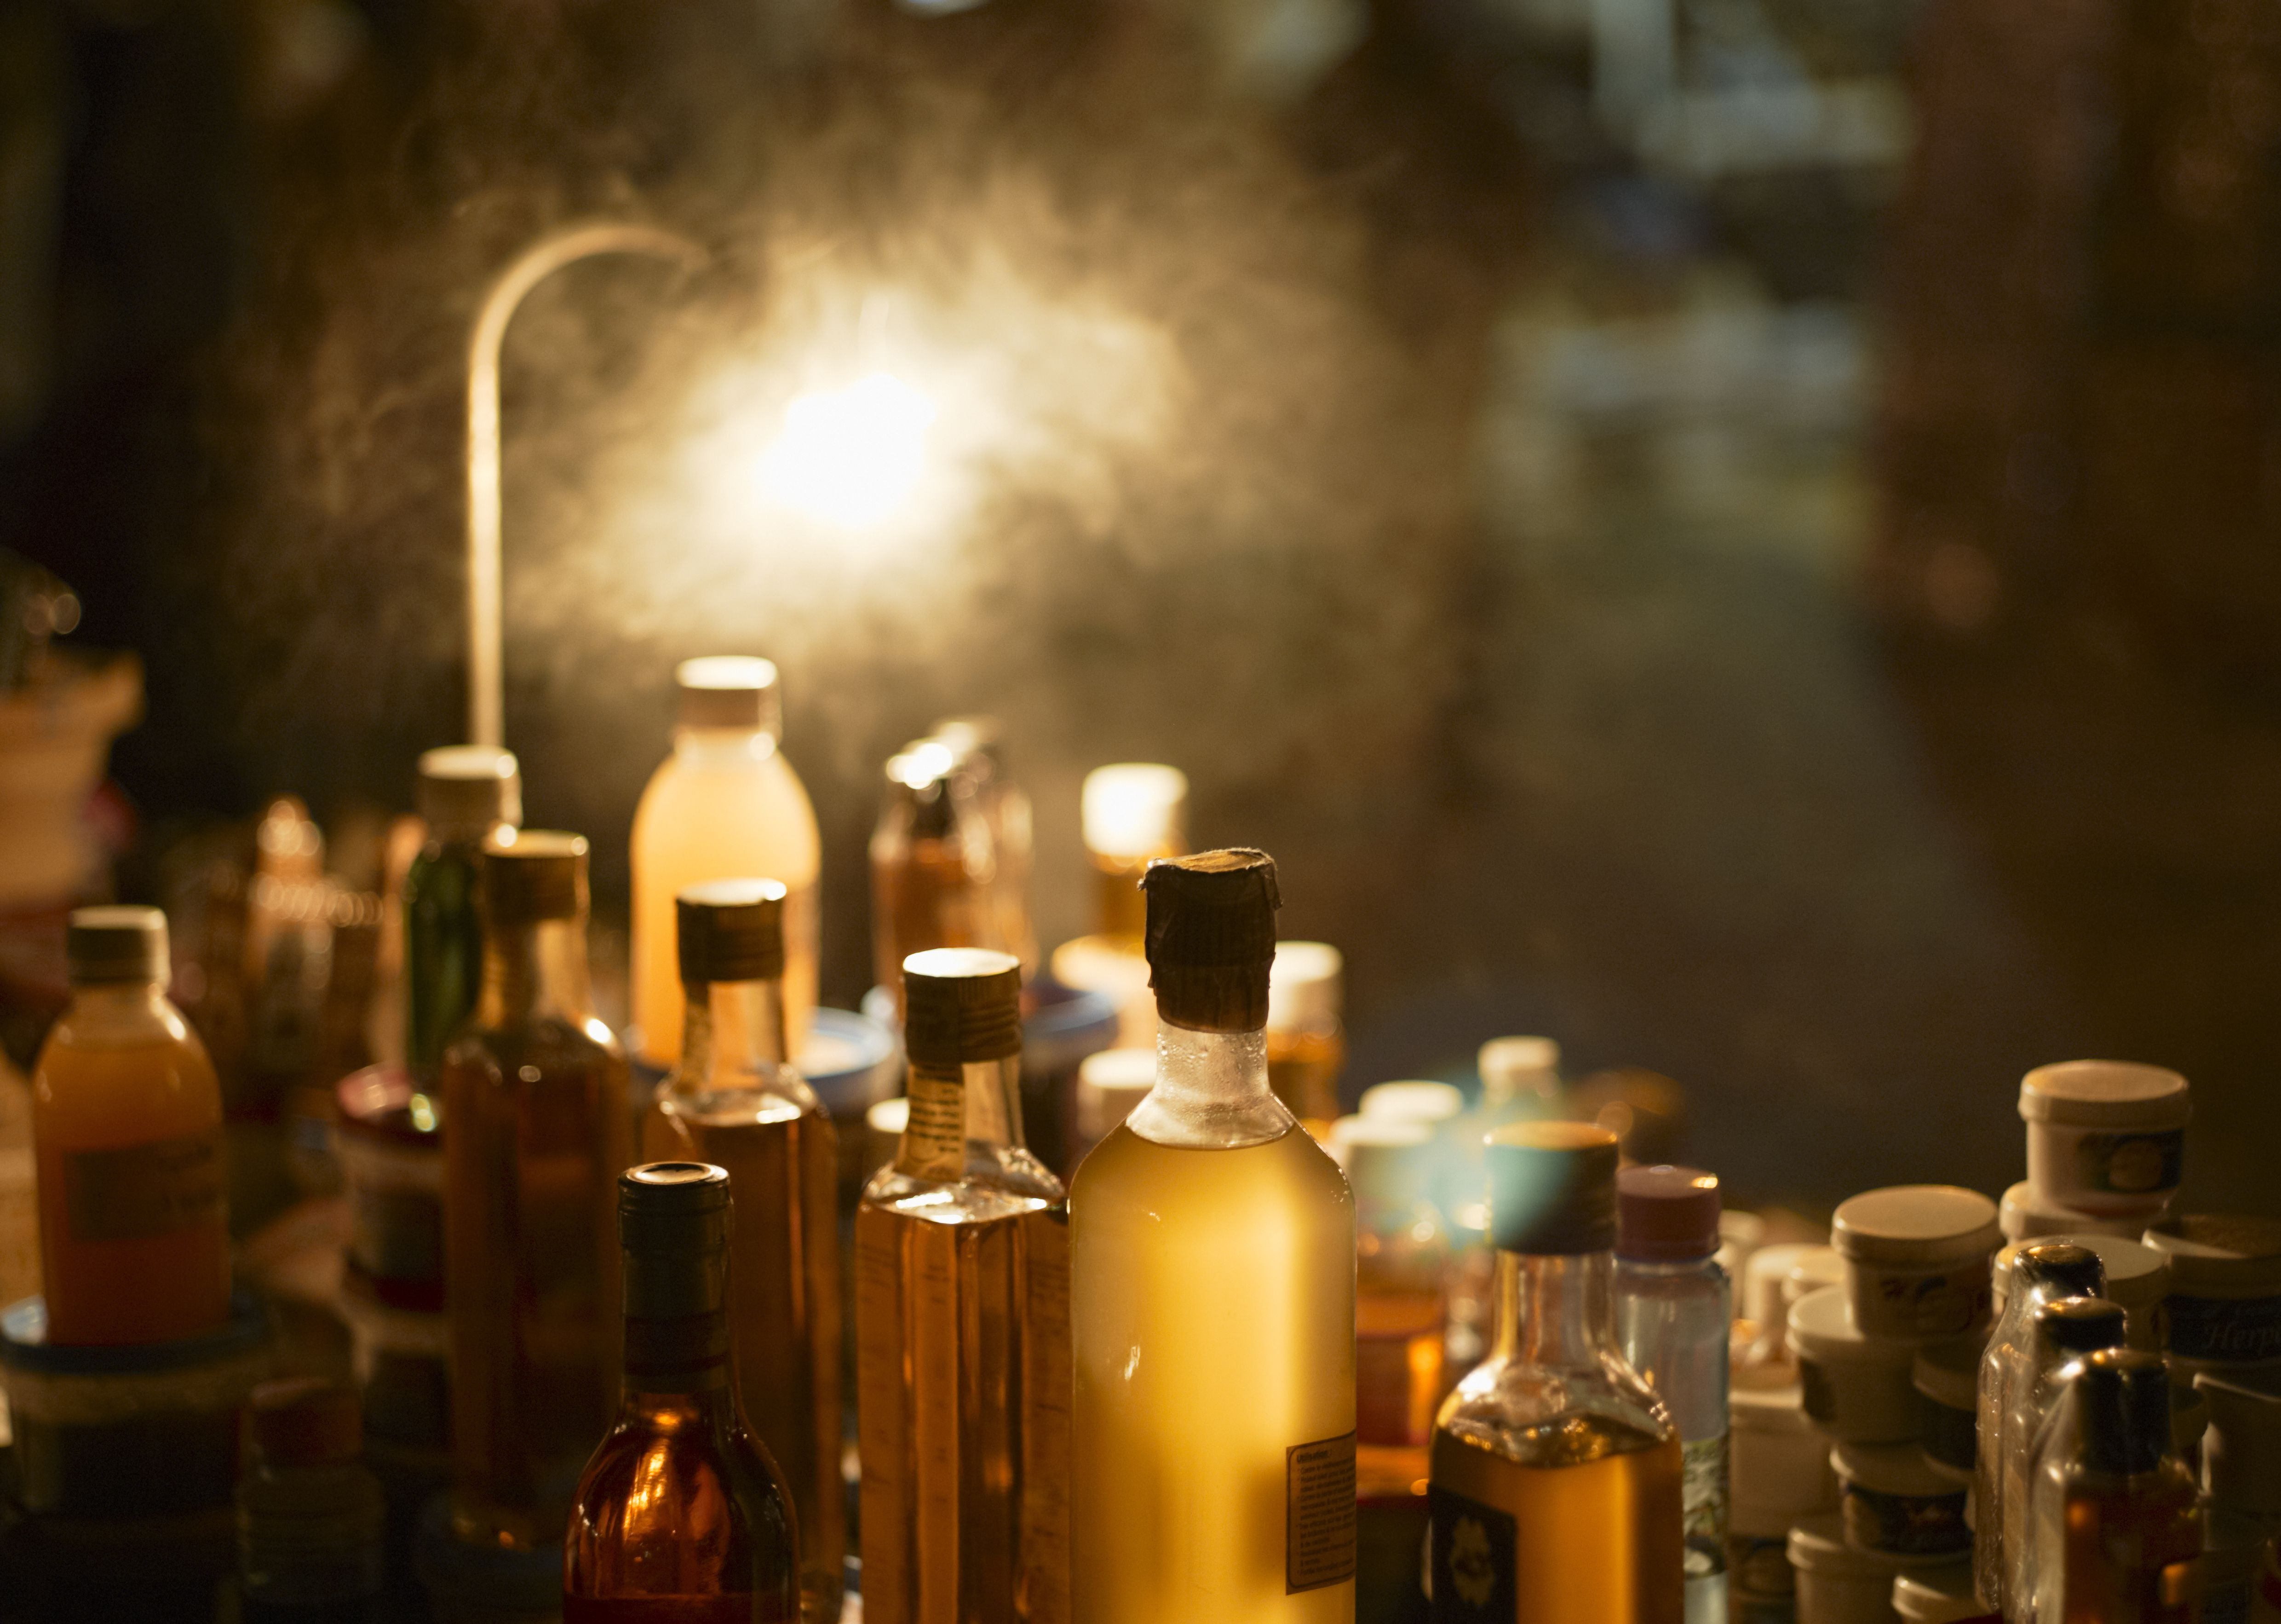 Various bottles of oil and essence on market stall